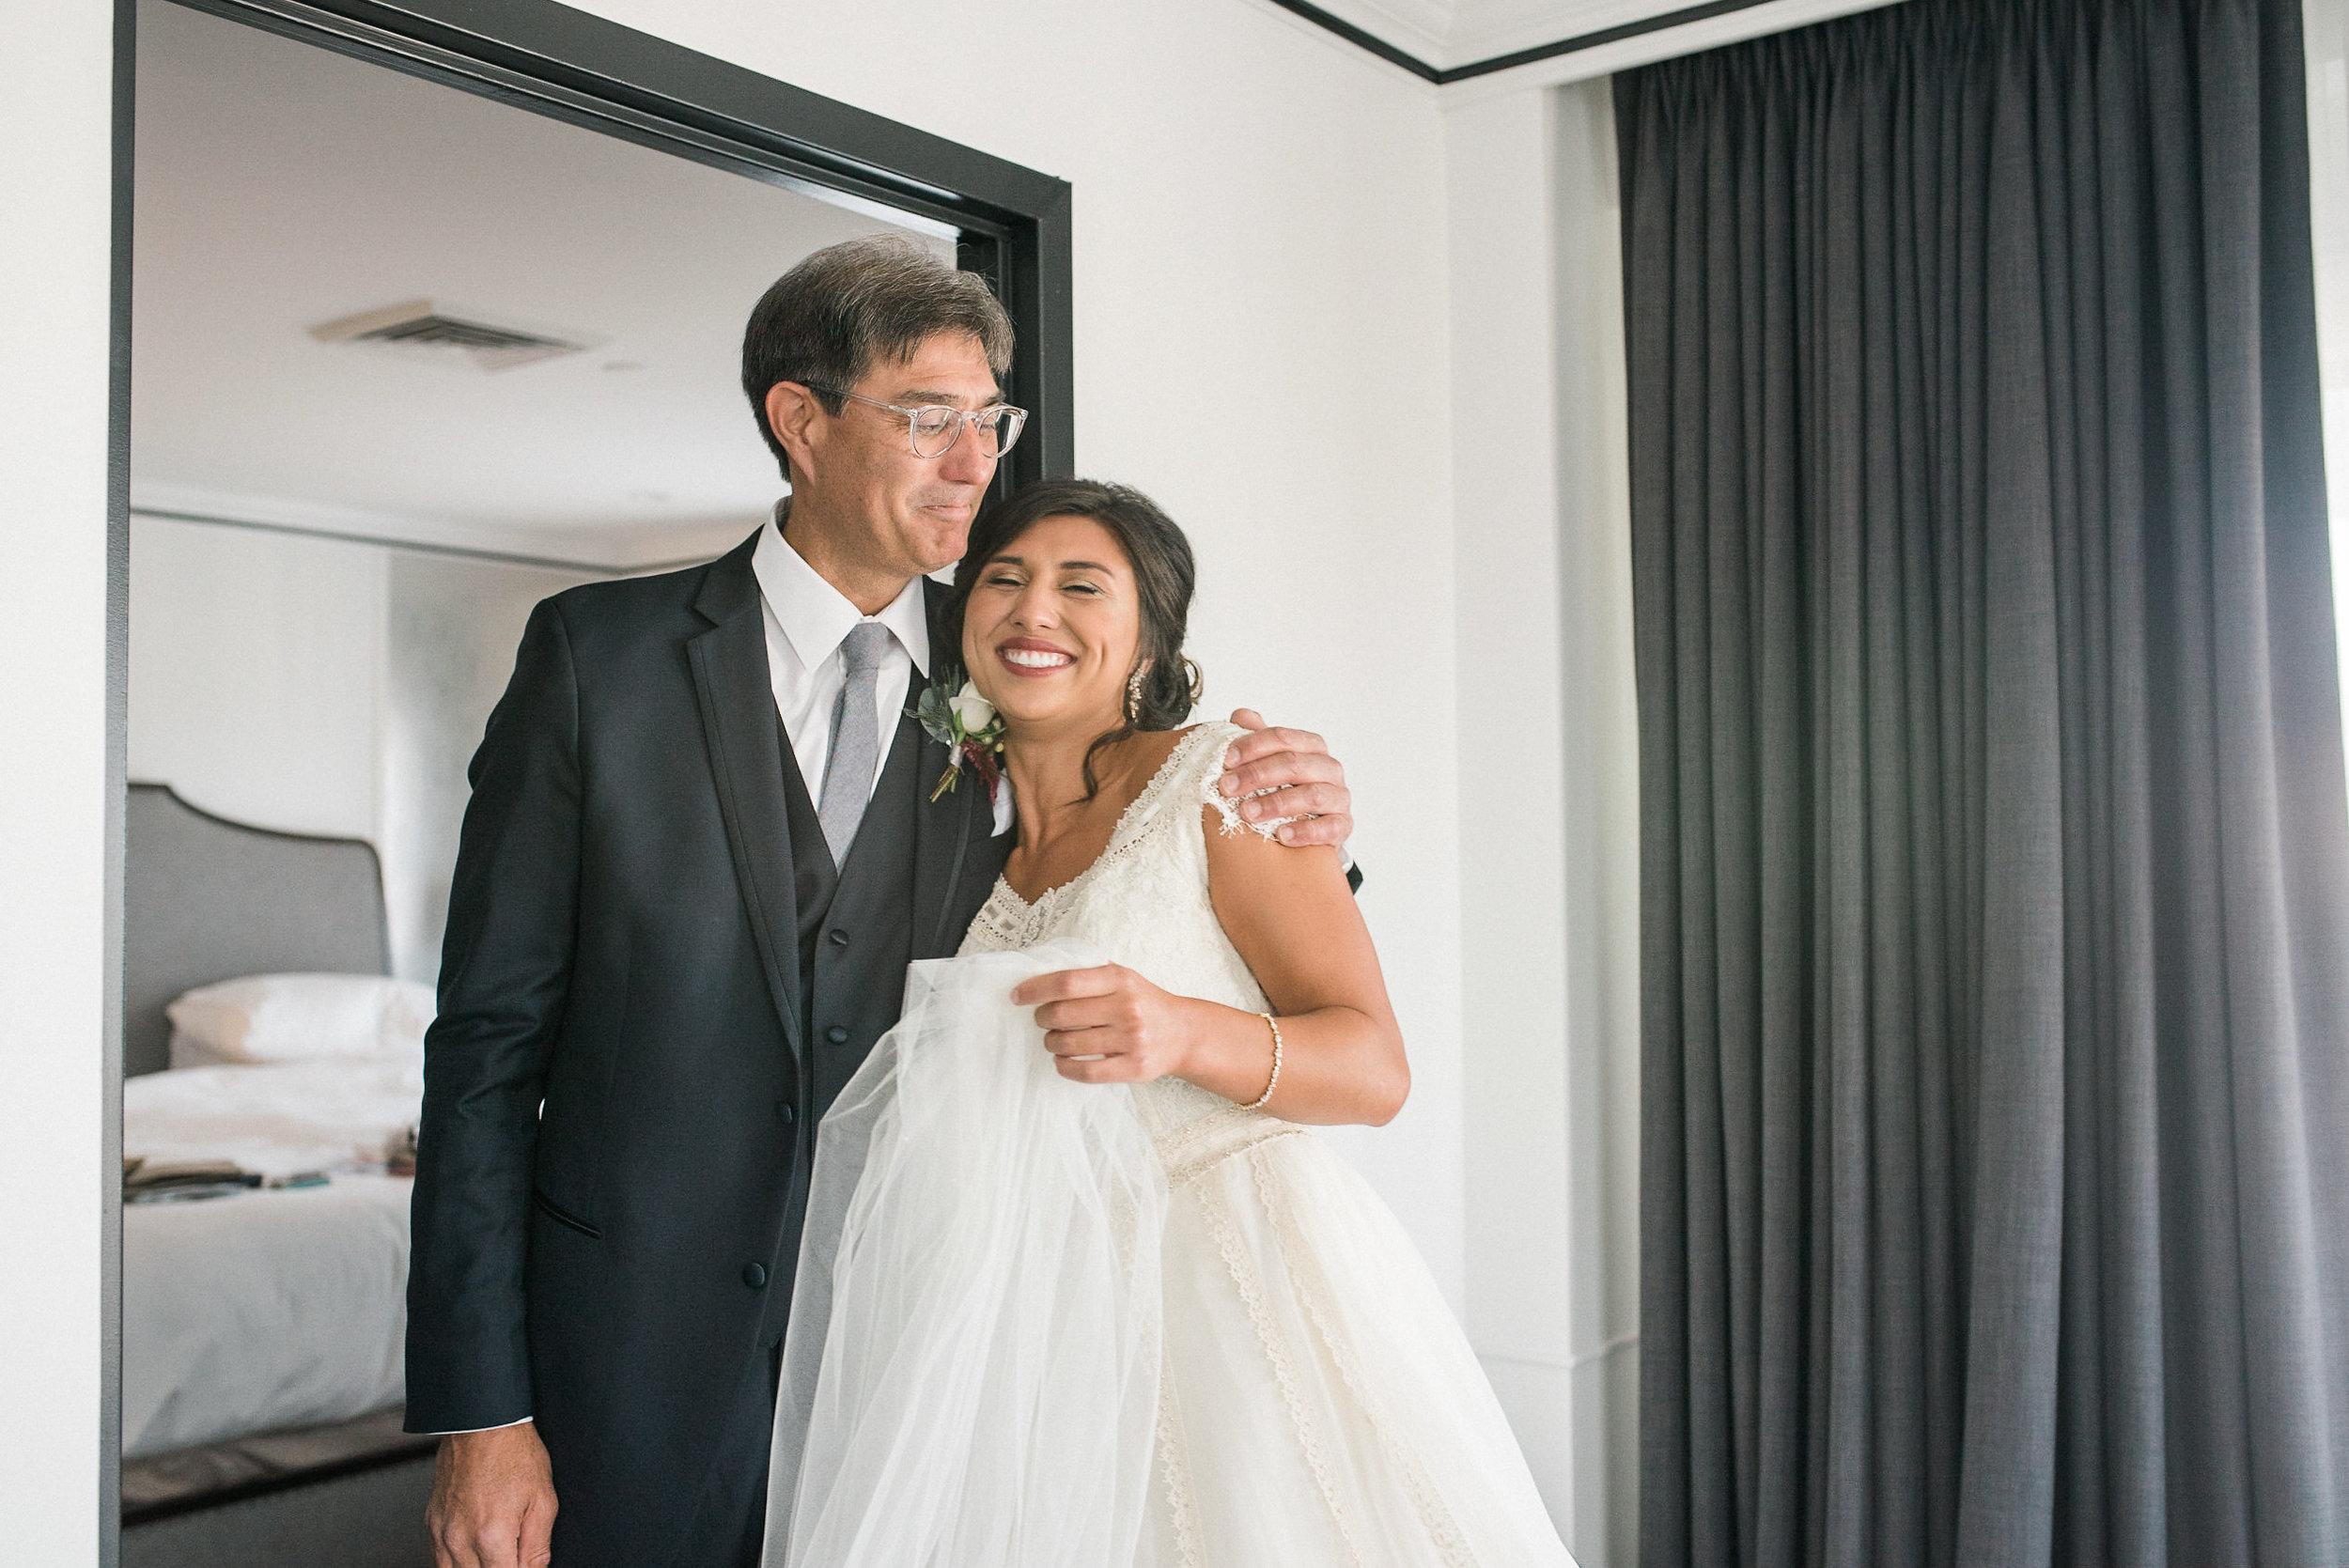 Bride hugging father in hotel room